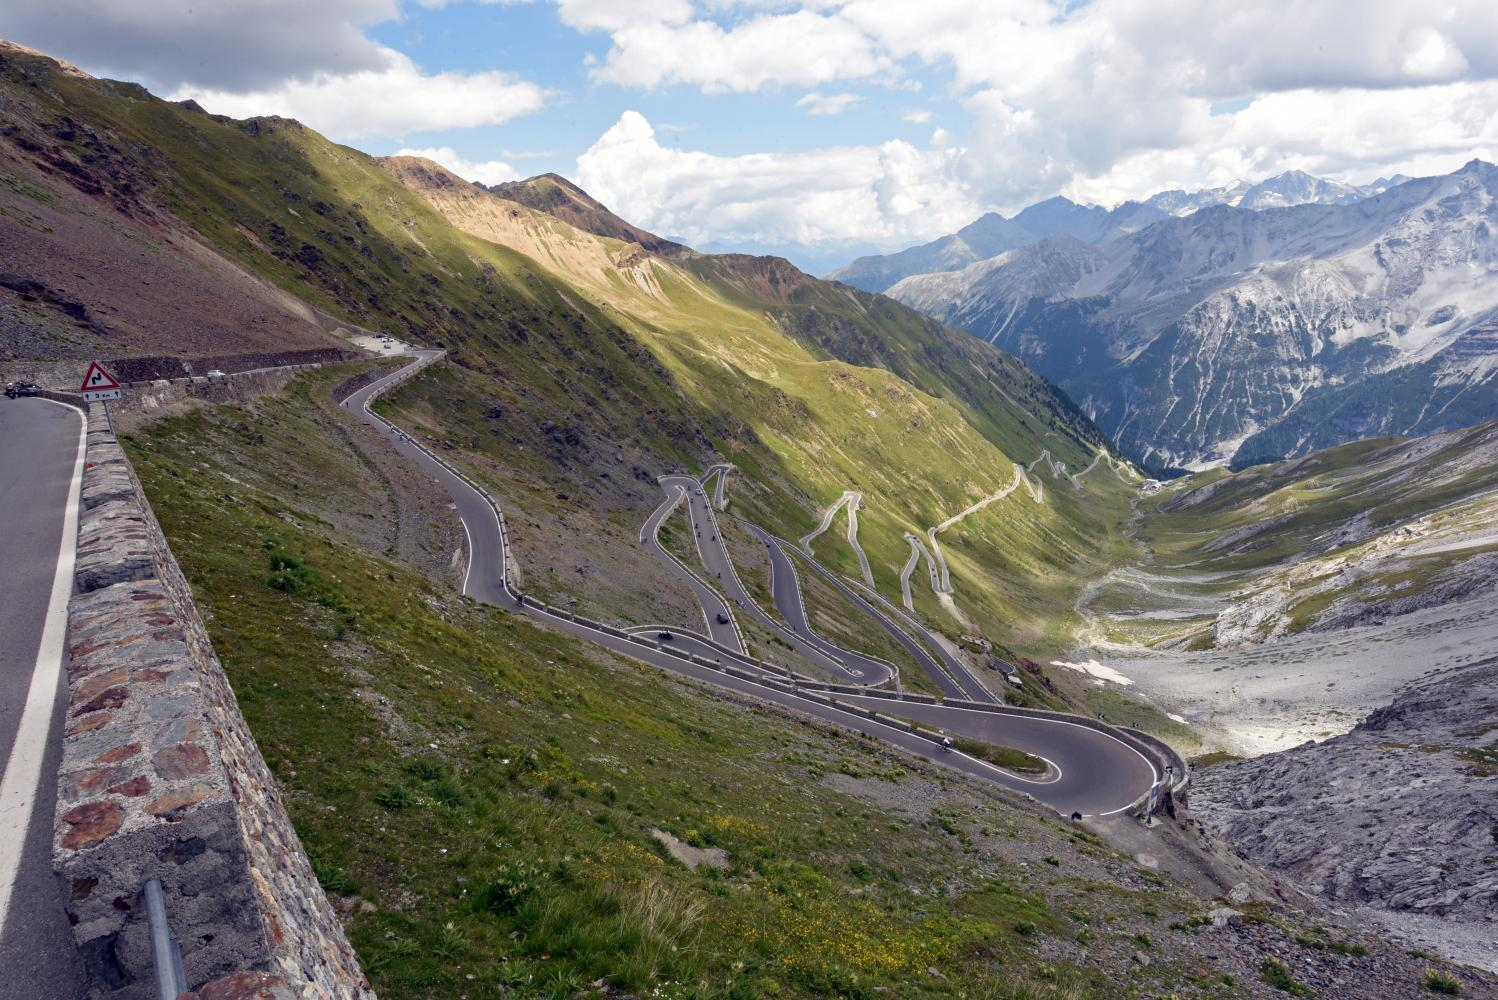 Passo dello Stelvio (Prato Allo Stelvio), Italy - PJAMM Cycling - Climb of the Week